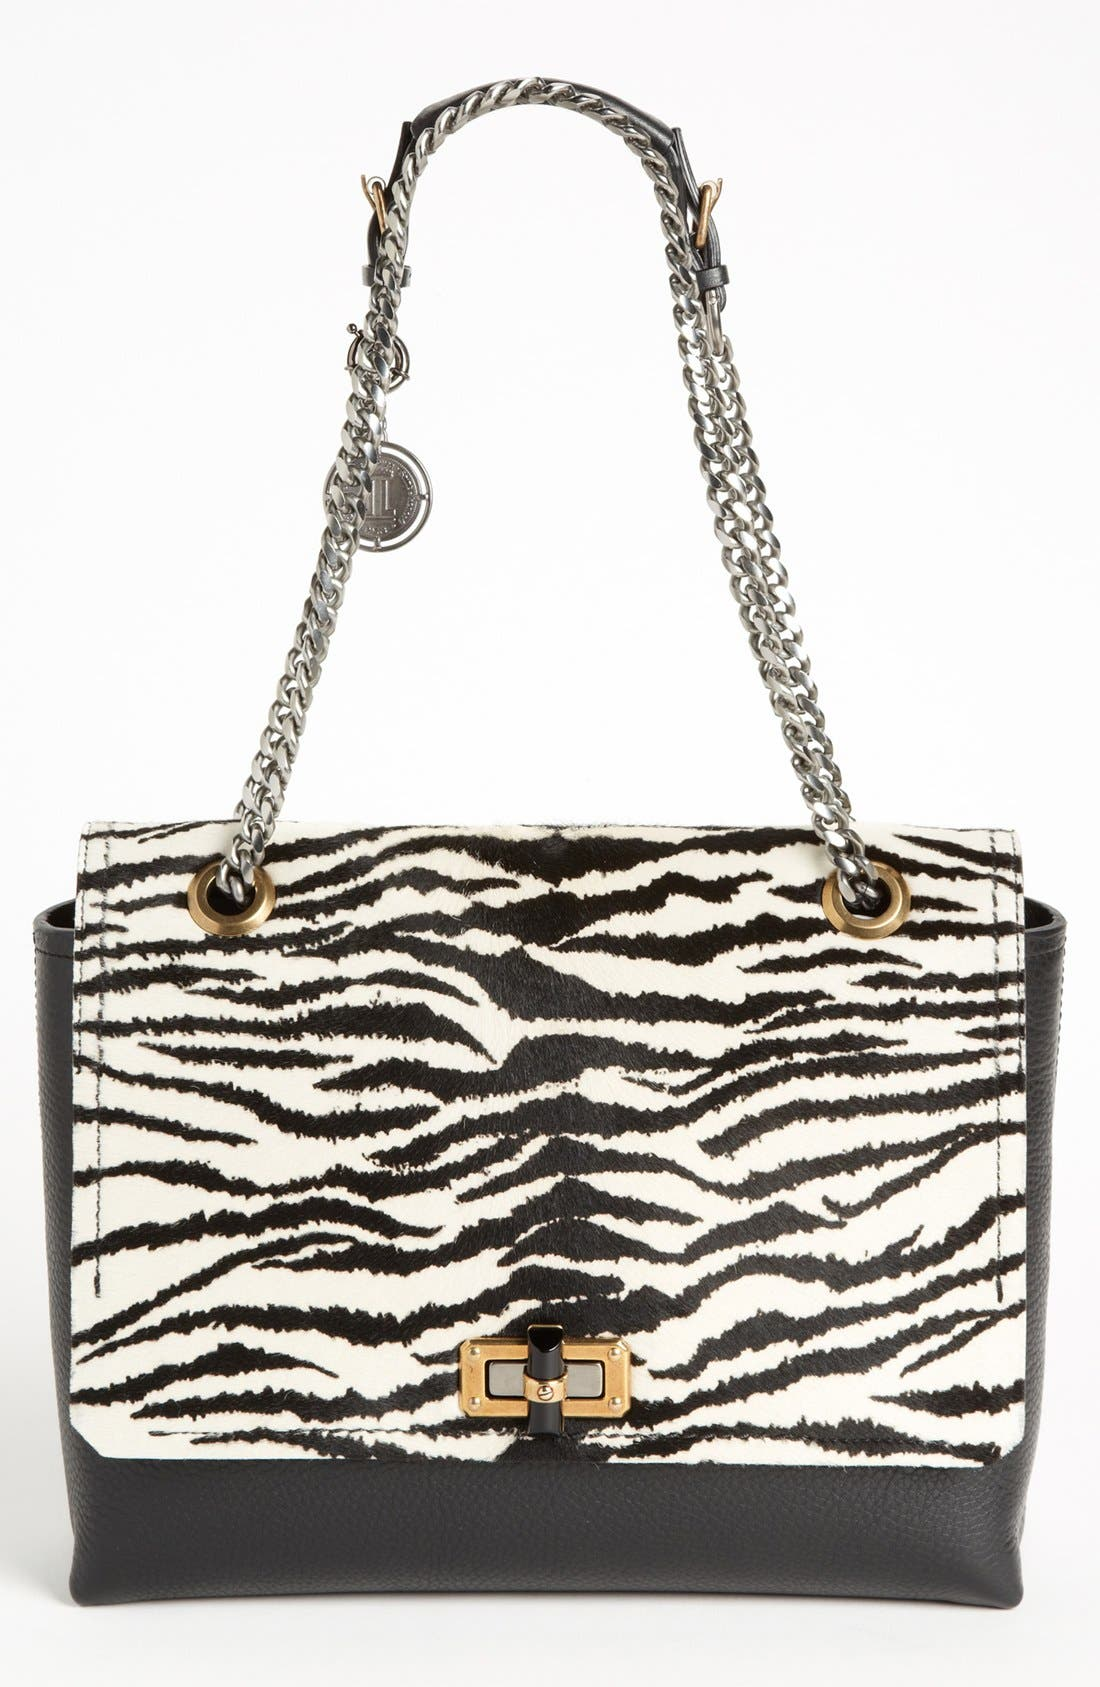 Main Image - Lanvin 'Happy Zebra' Calf Hair Flap Shoulder Bag